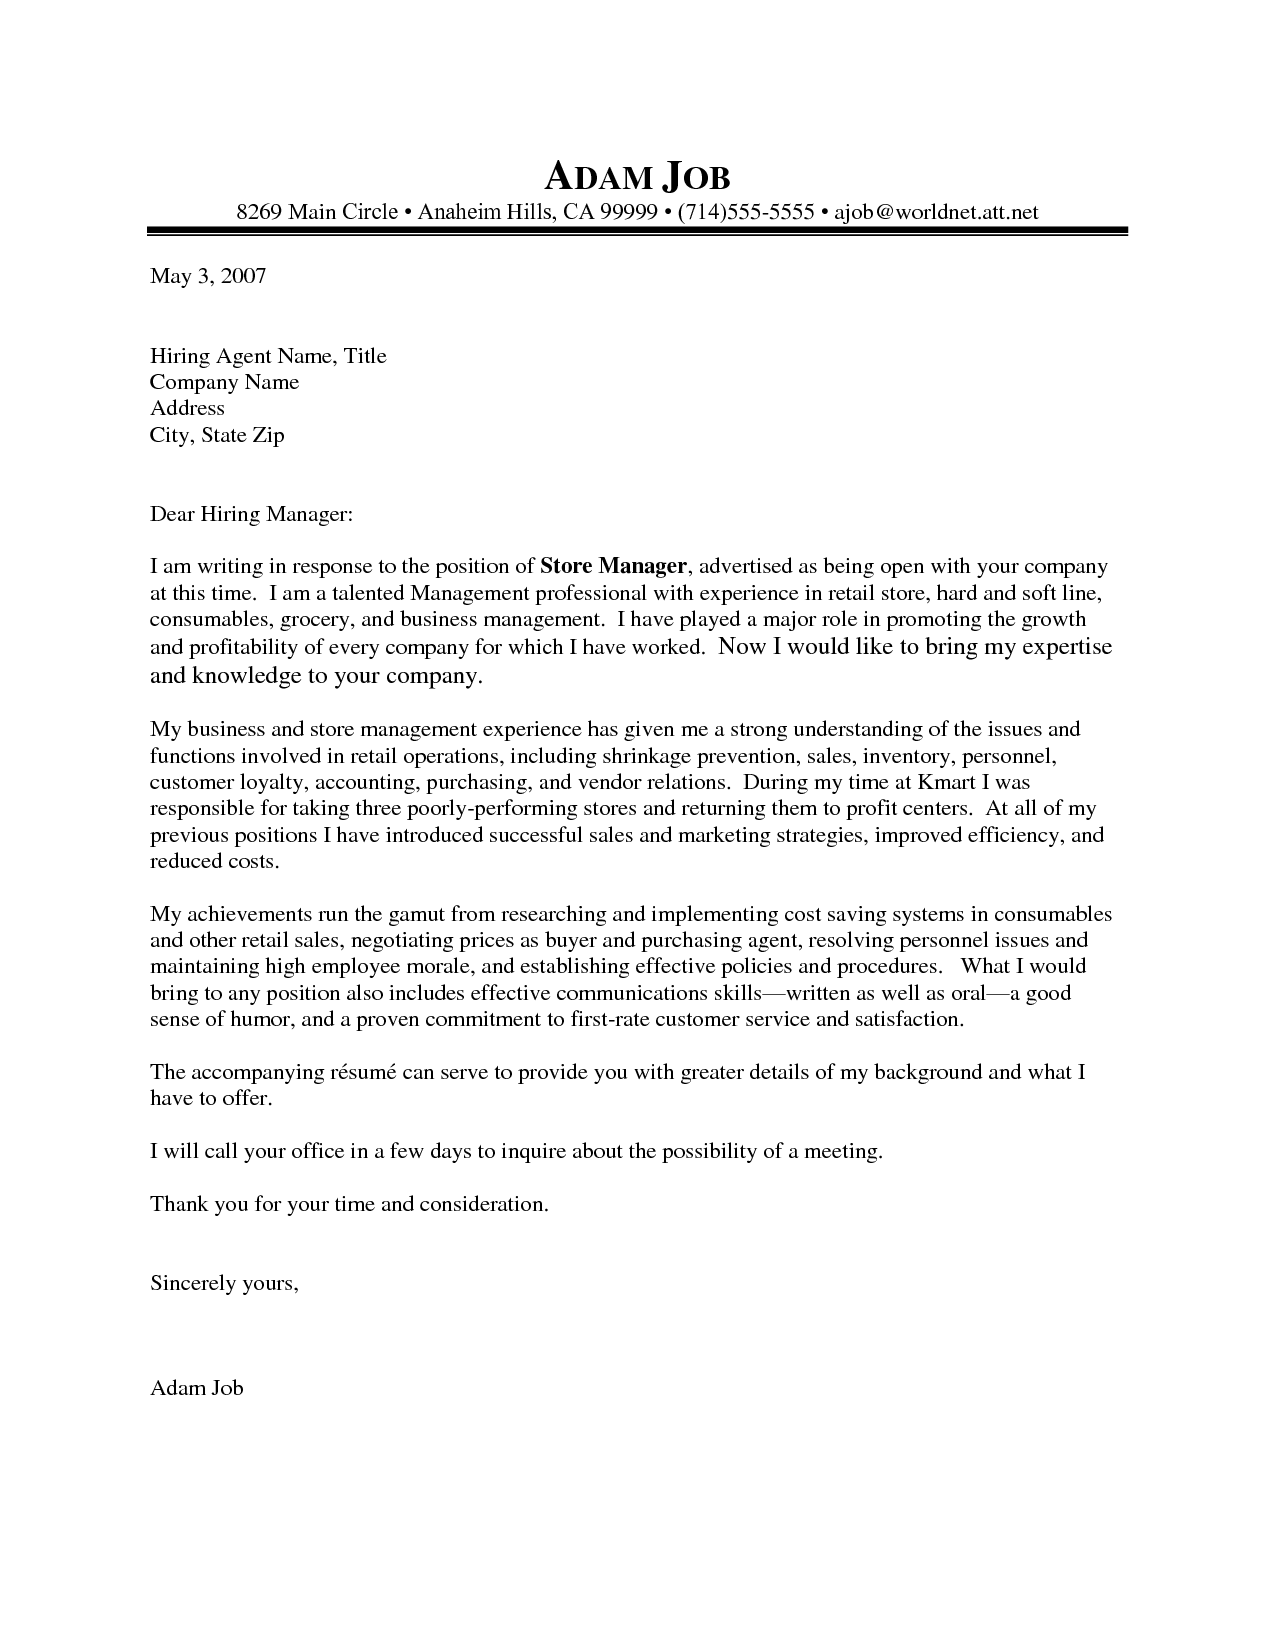 College Cover Letter Examples Delectable Application Letter Sample For Any Position College Admissions 2018